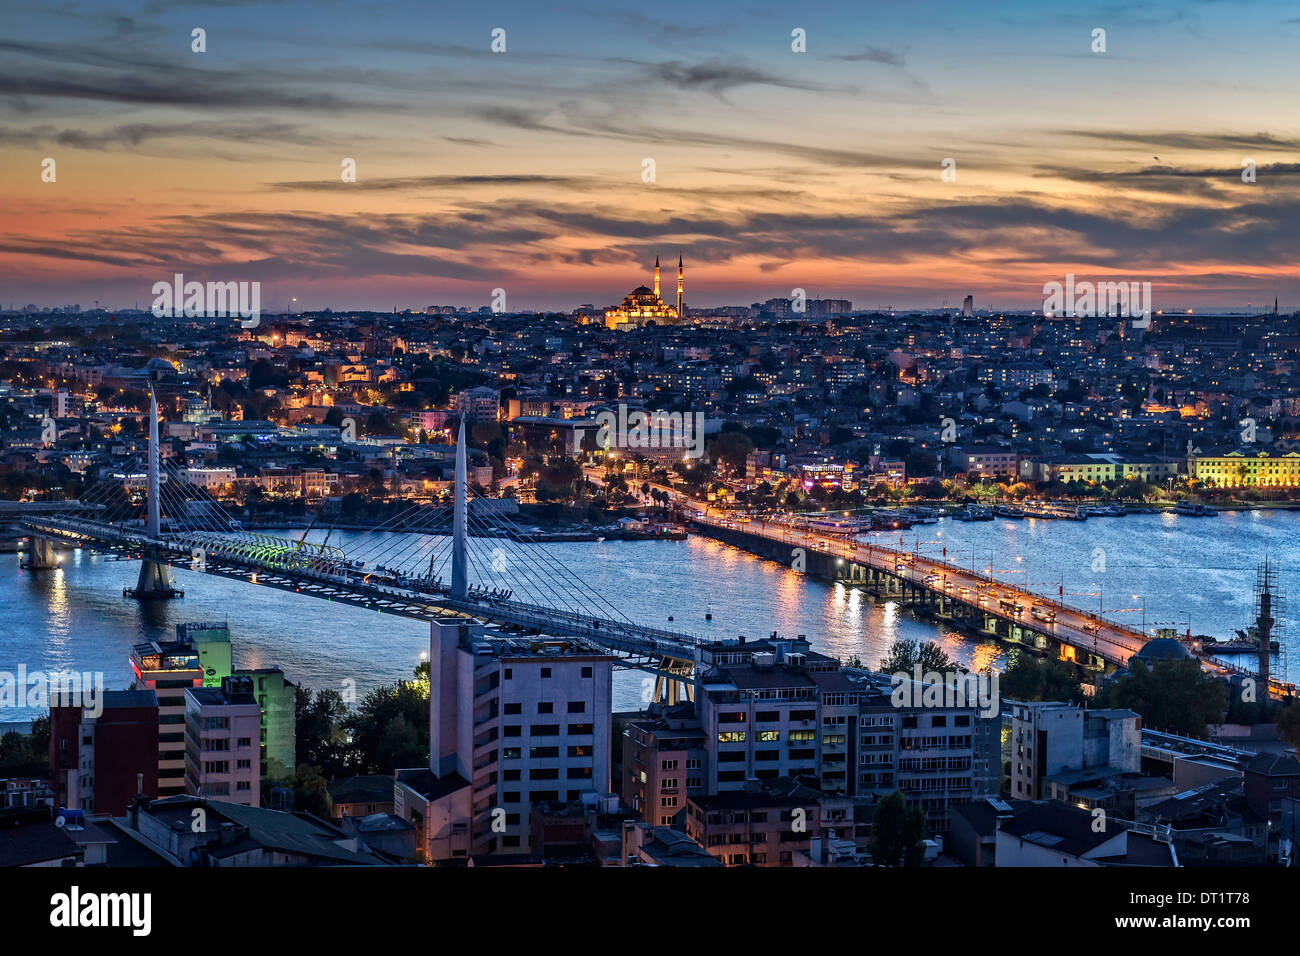 View over the Golden Horn with the Fatih Cami in the middle. - Stock Image